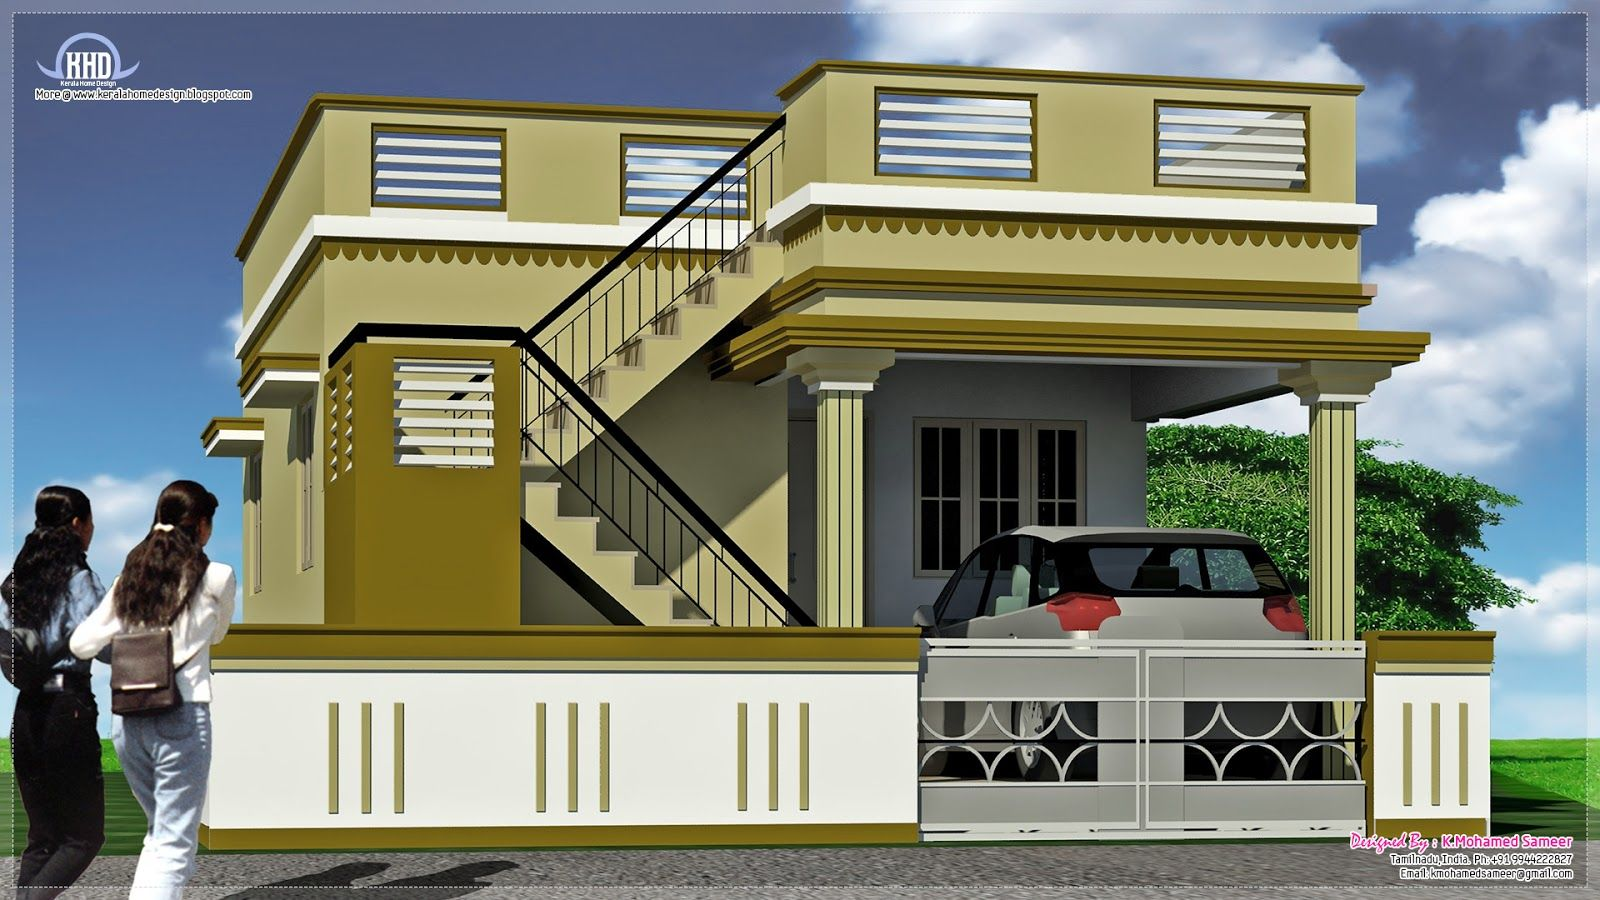 Exceptional South Indian House Exterior Designs House Design Plans Bedroom American